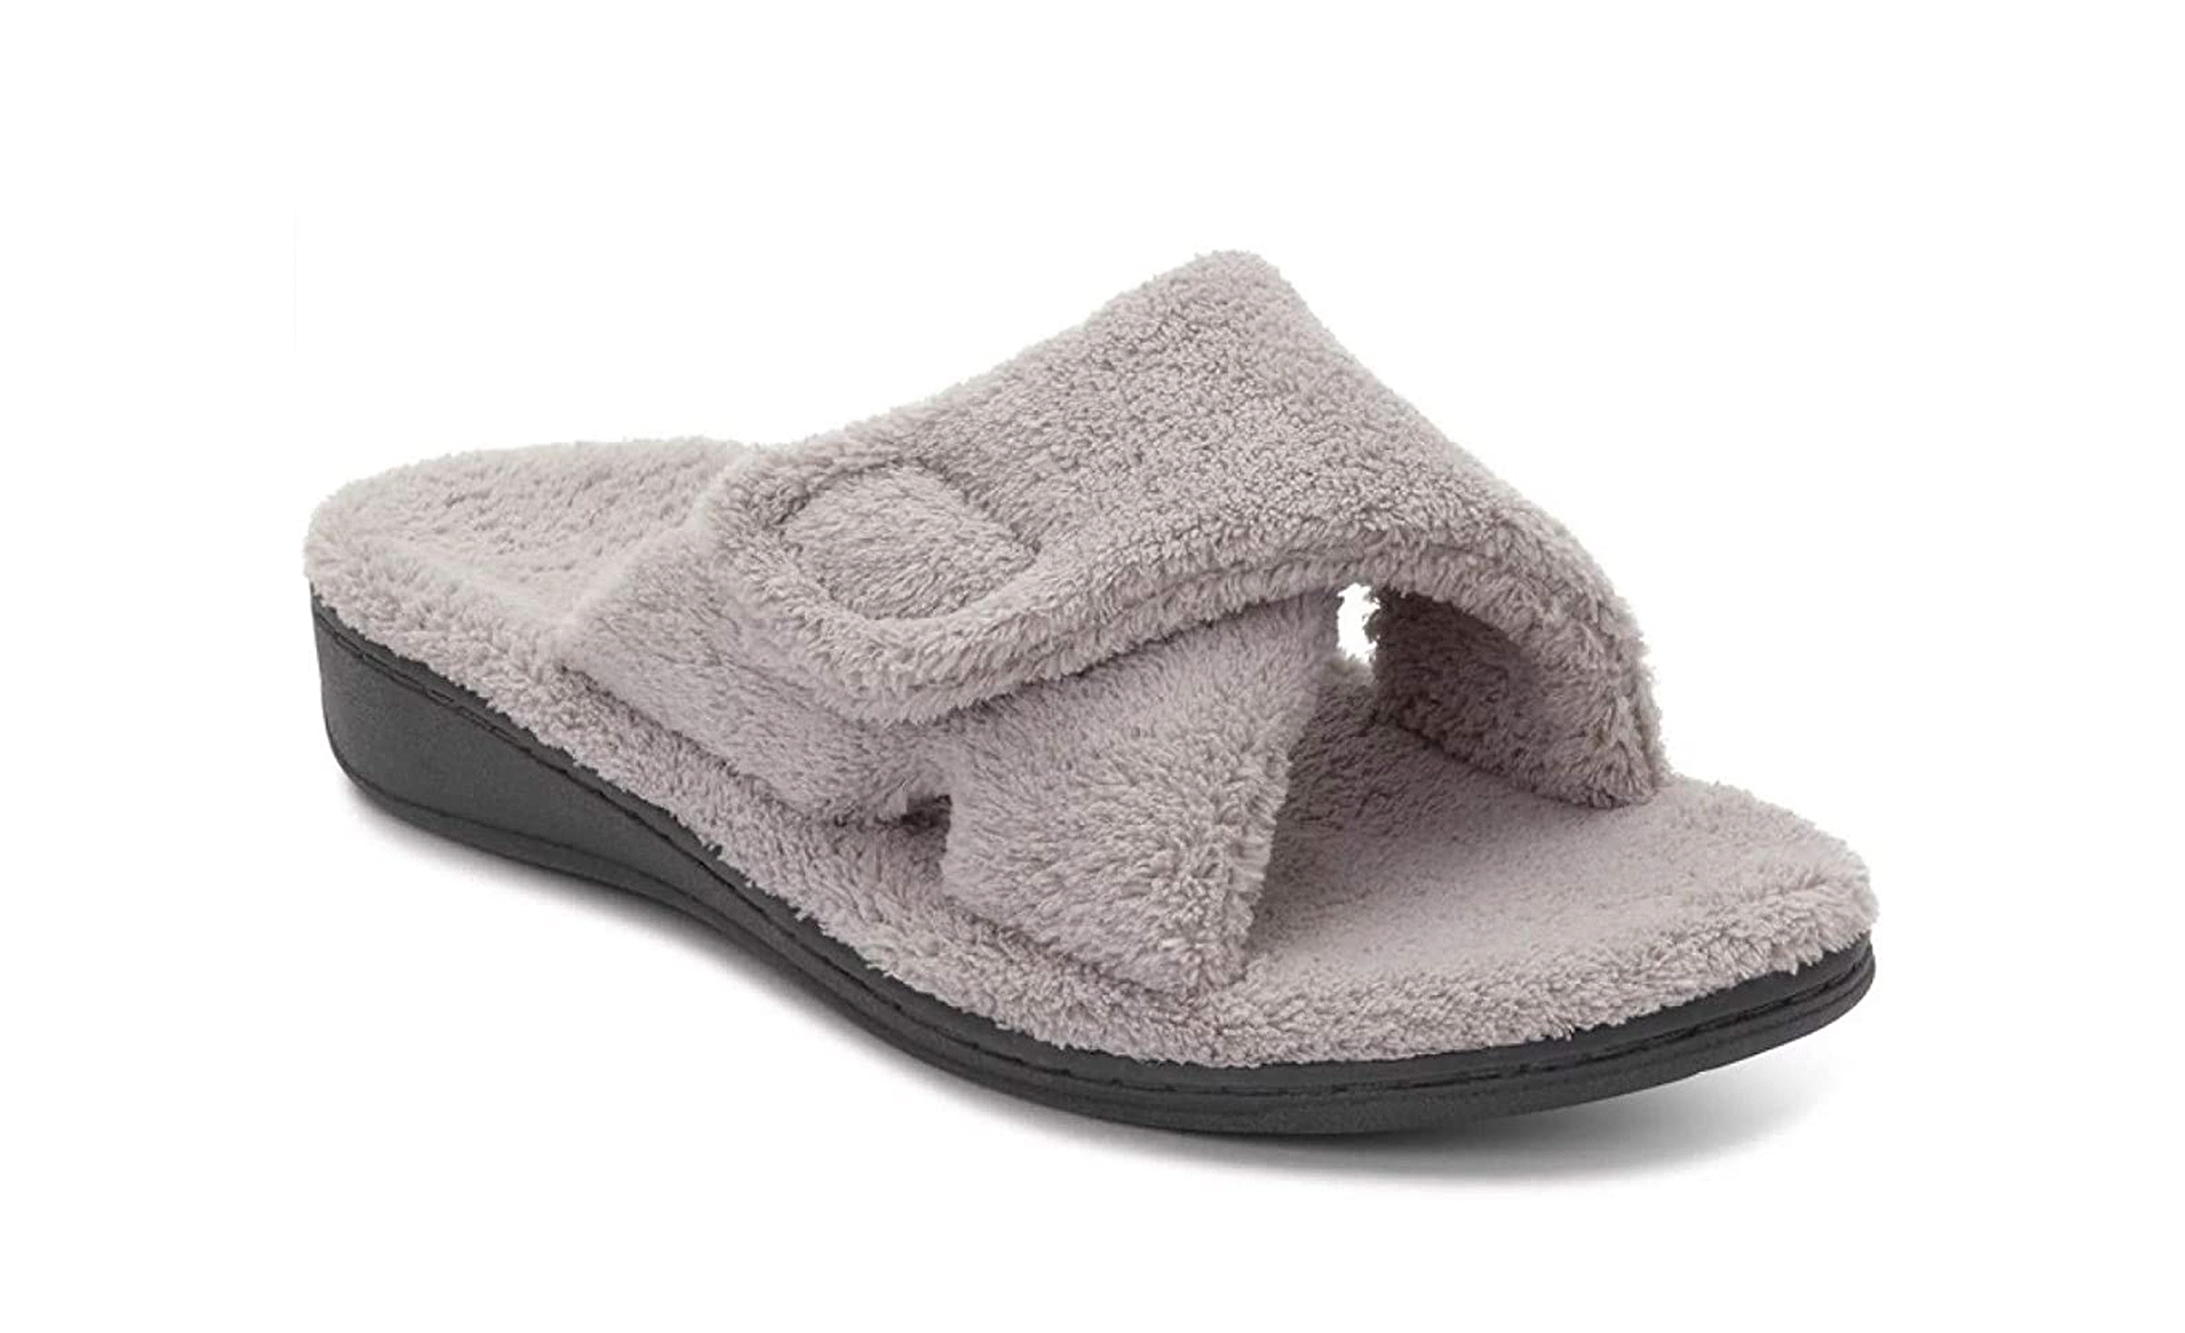 Vionic On-Sale Slippers May Be the Best